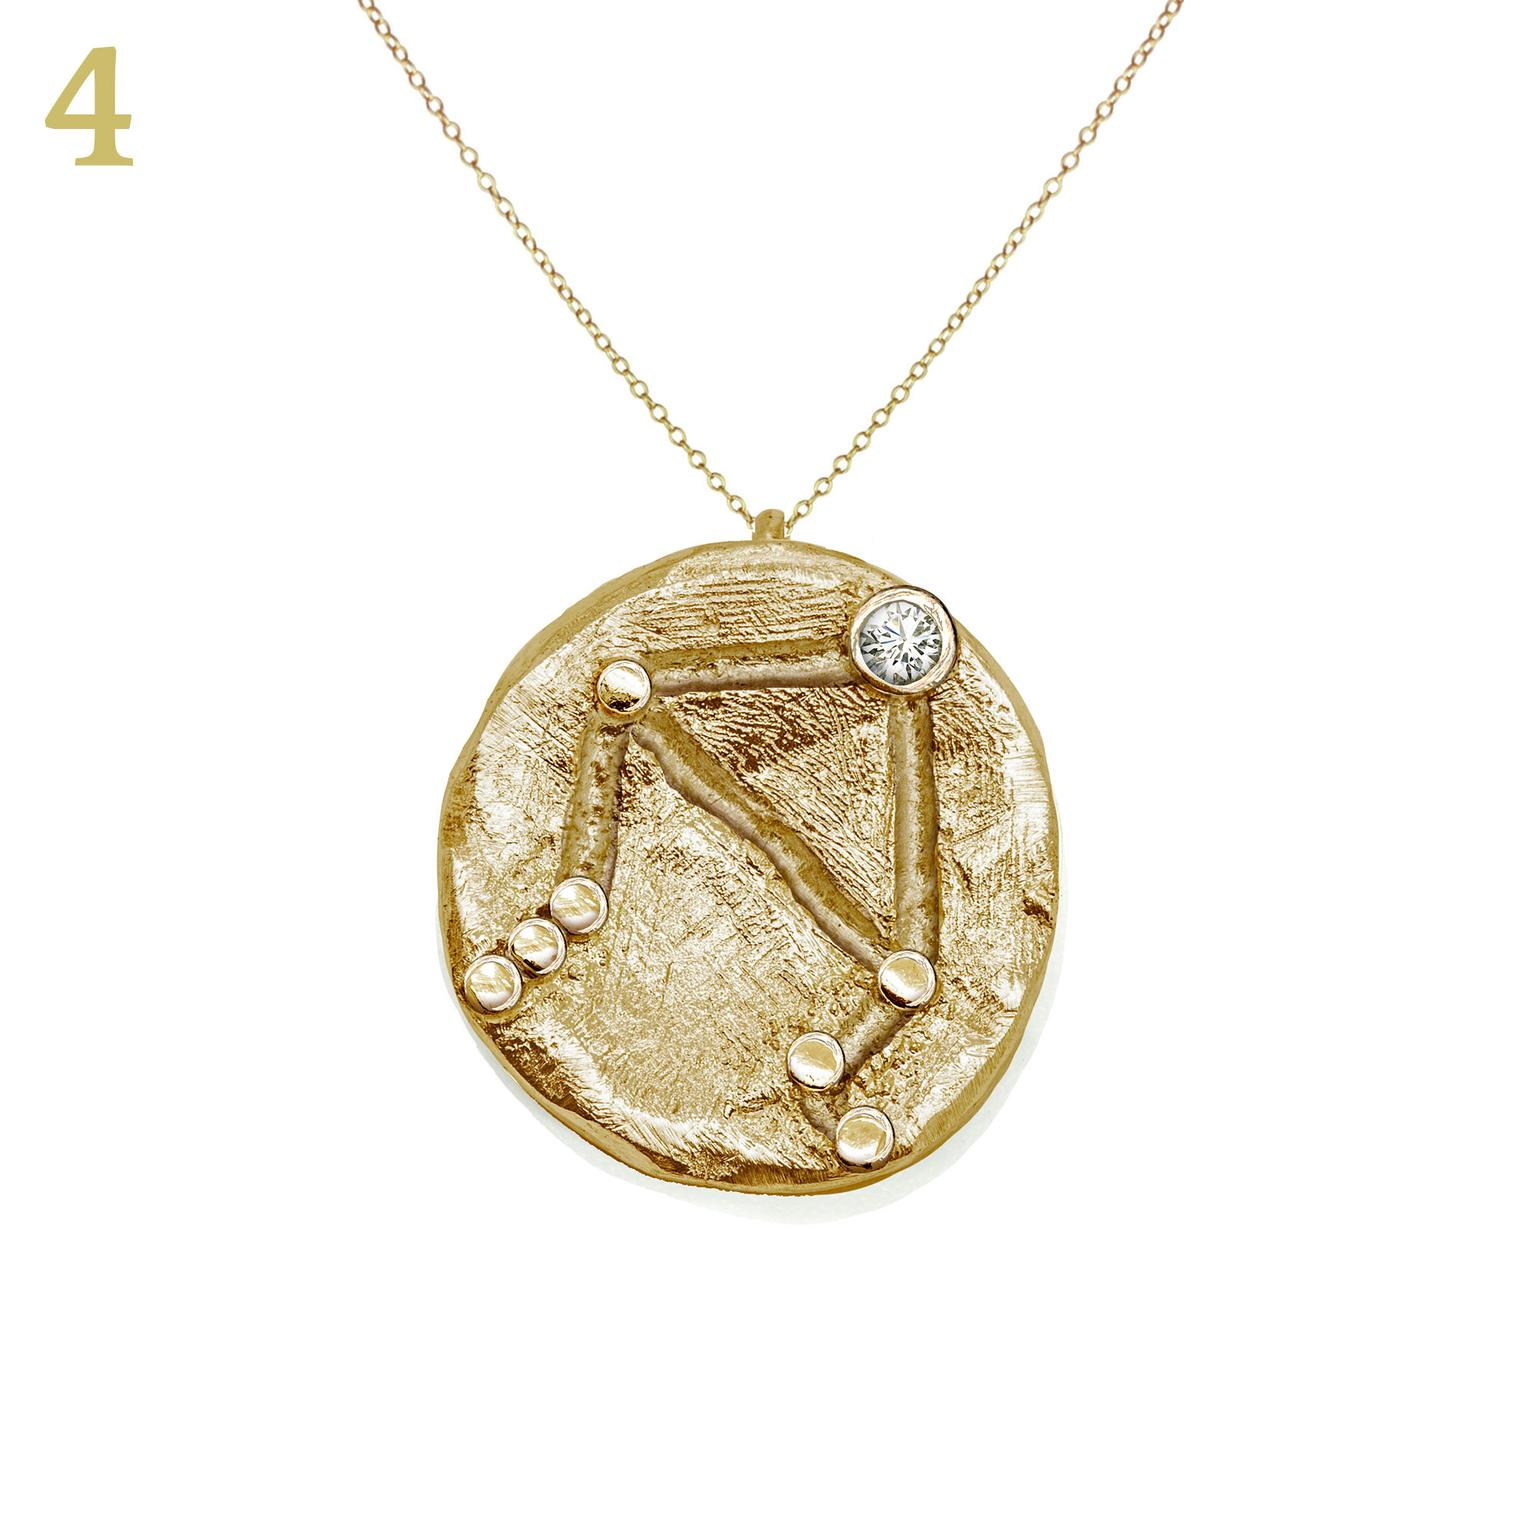 Anna Loucah Fairtrade gold and diamond amulet necklace